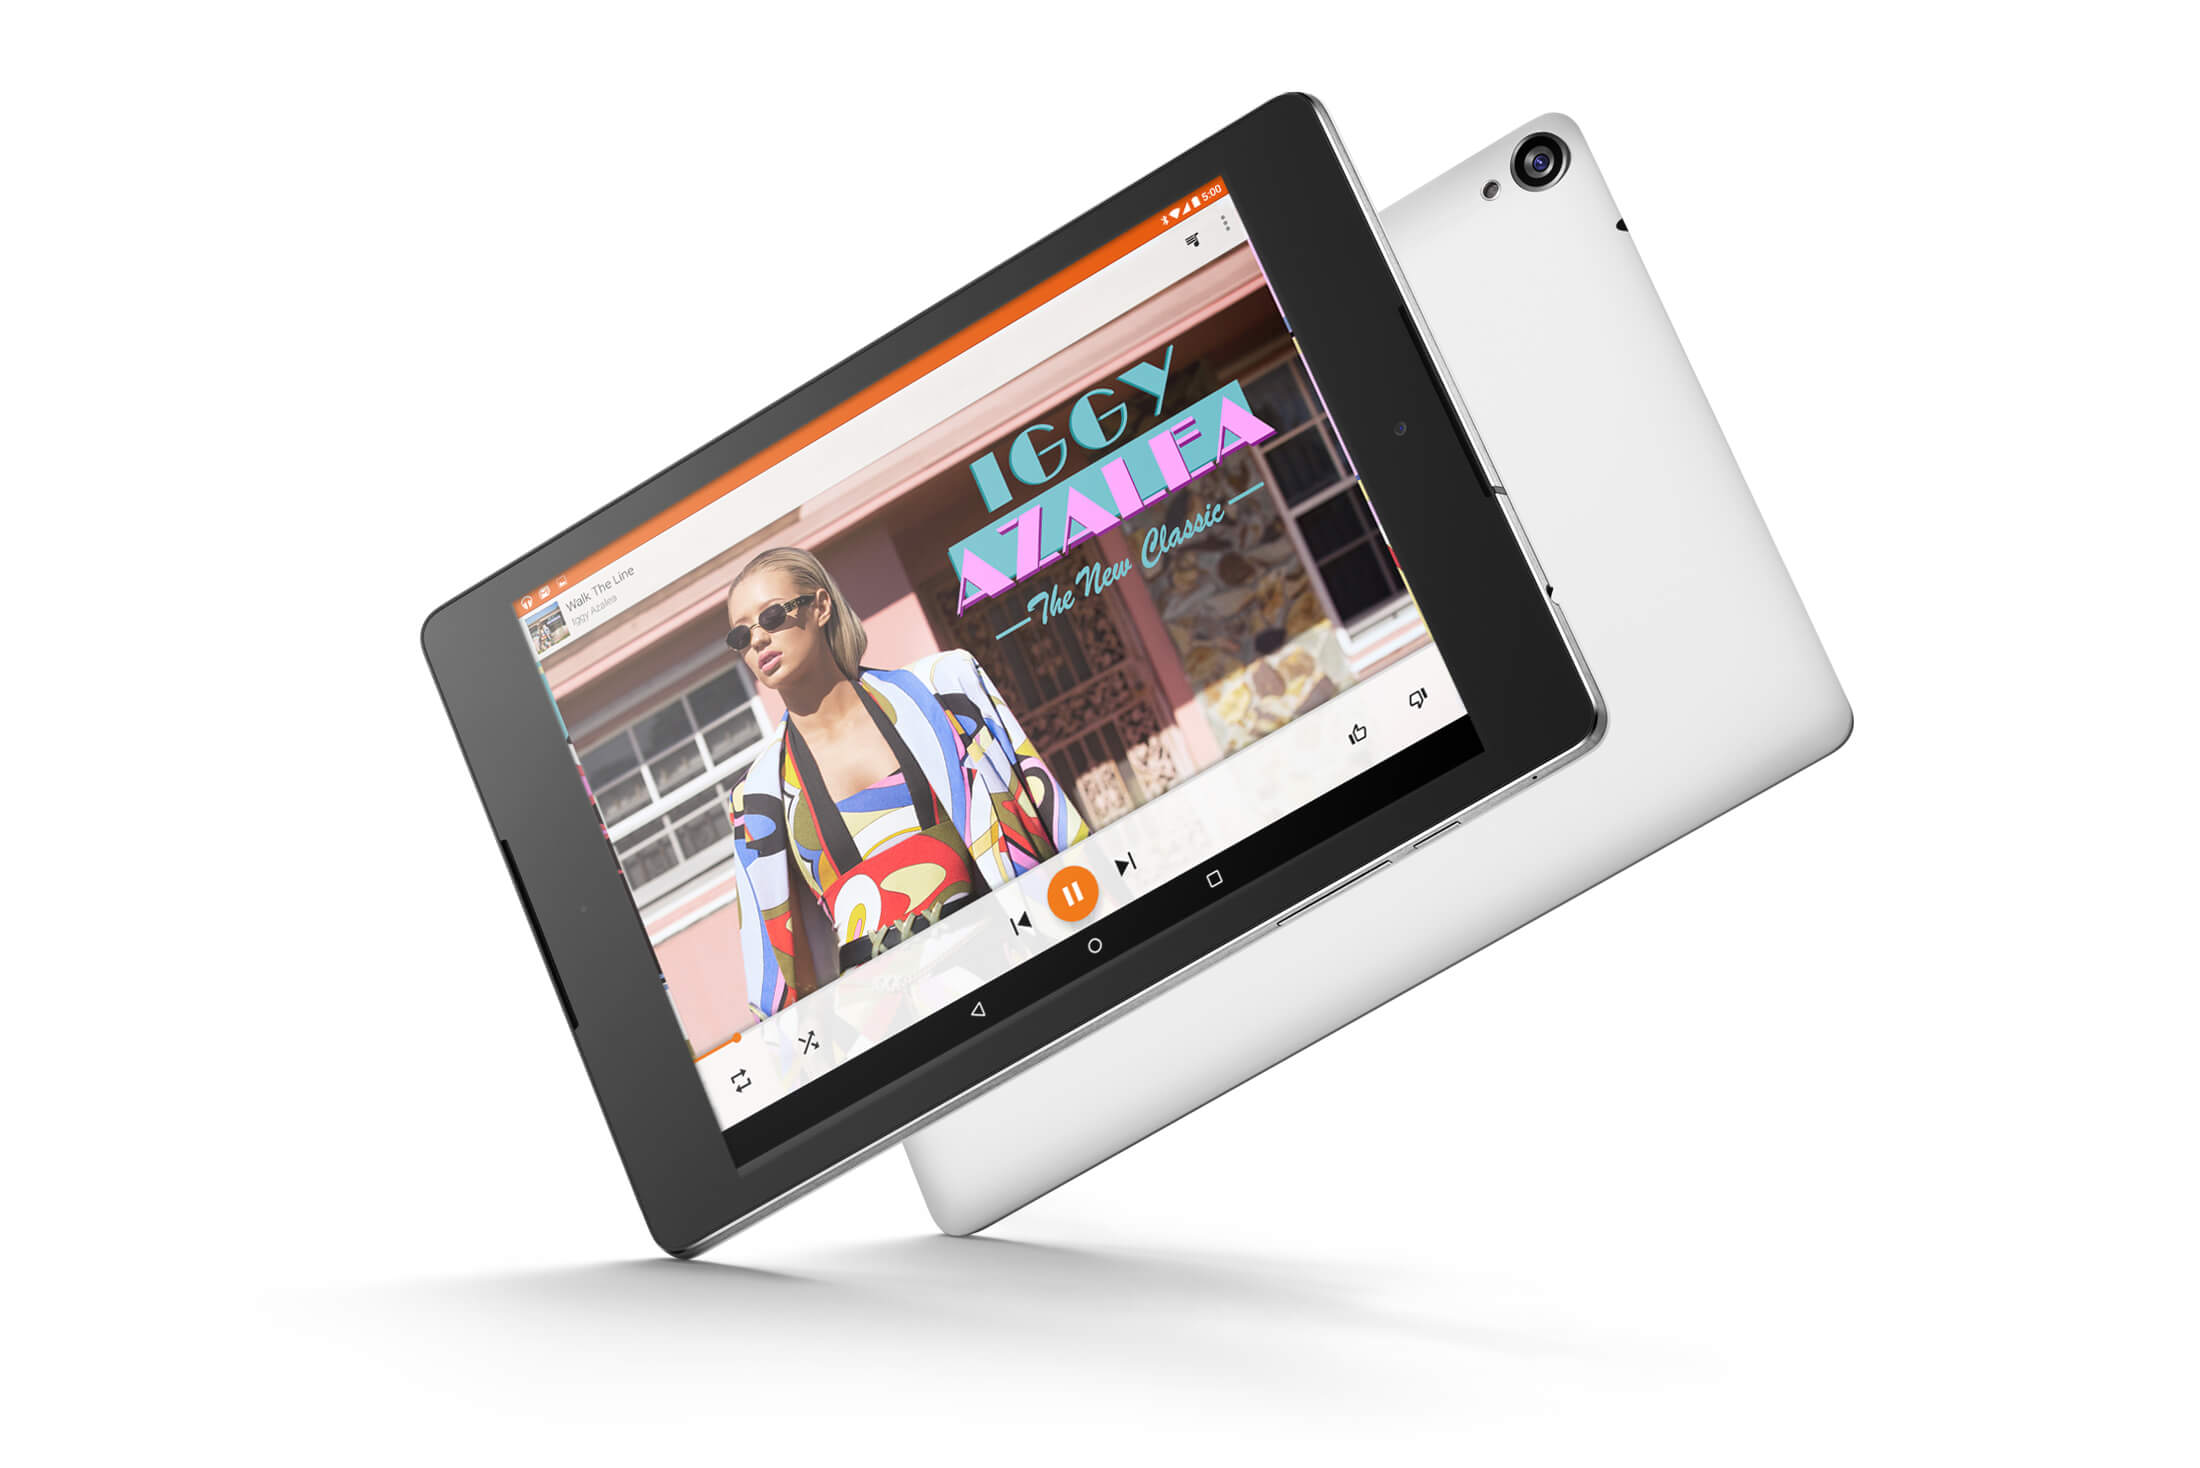 htc-nexus-9-google-tablet-2014-android-4g-lte-best-tablet